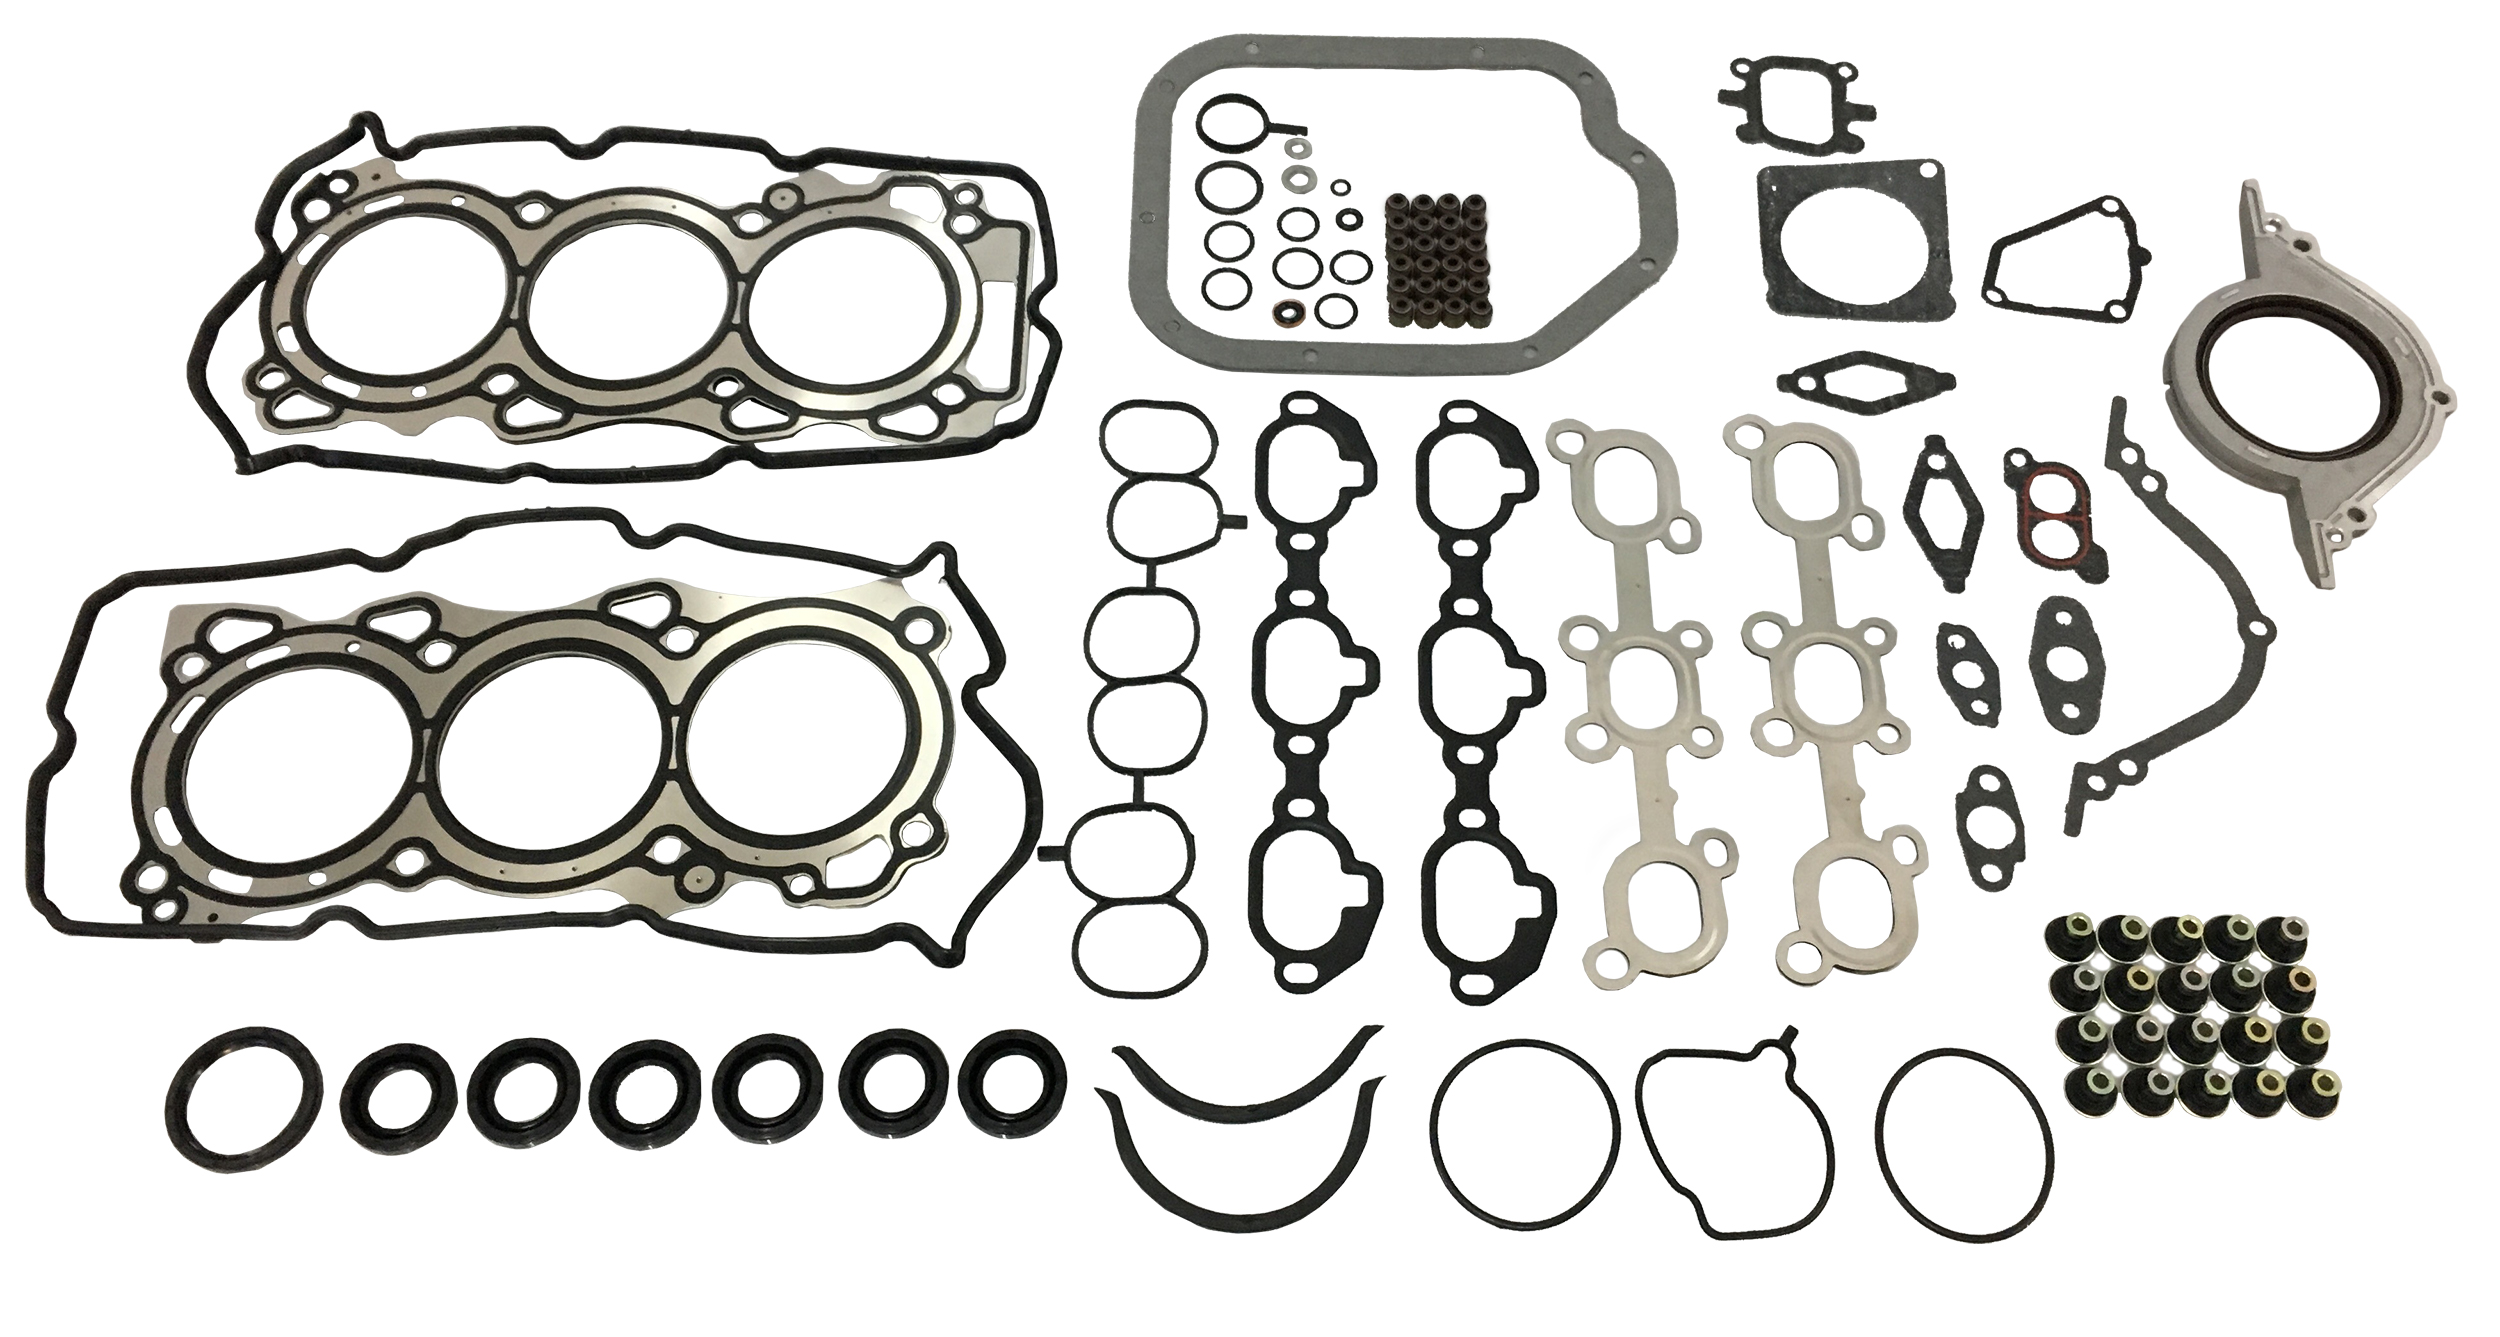 Gasket set cylinder head gasket for Nissan FX 35 350Z VQ35DE 3.5 NEW